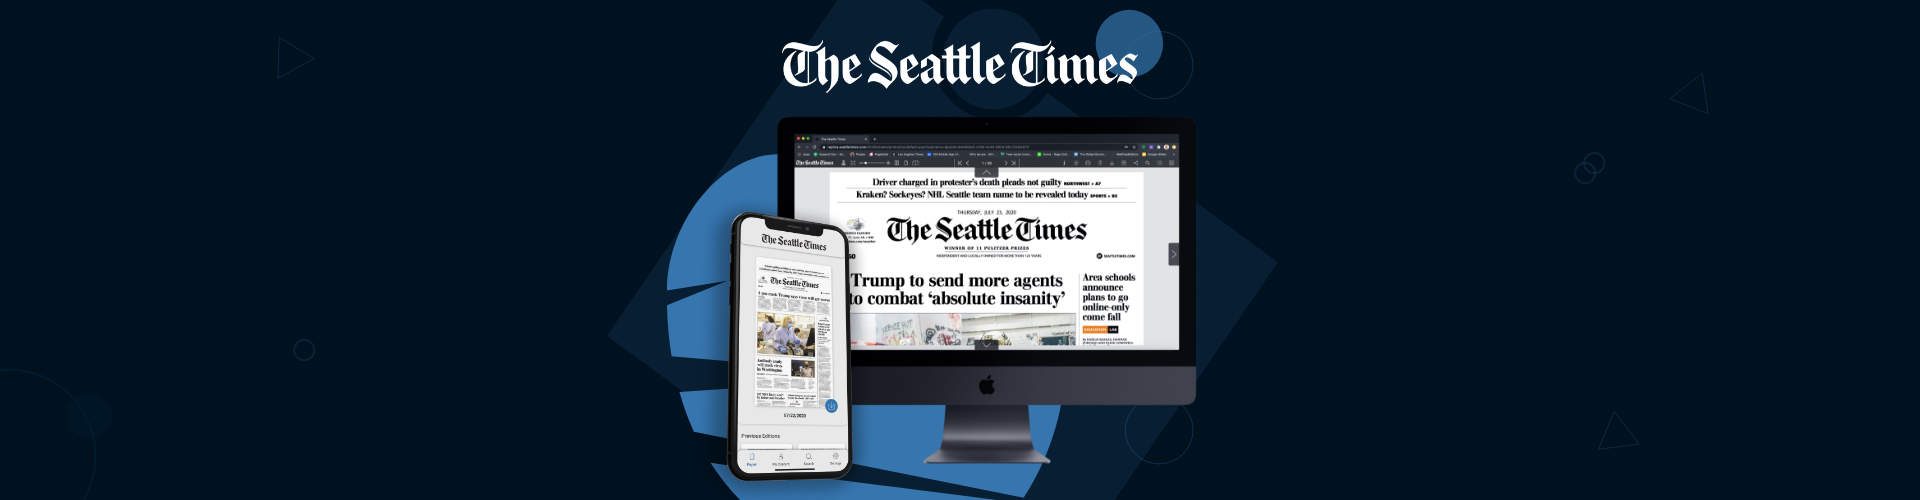 The Seattle Times Launch on PageSuite's Edition Platform